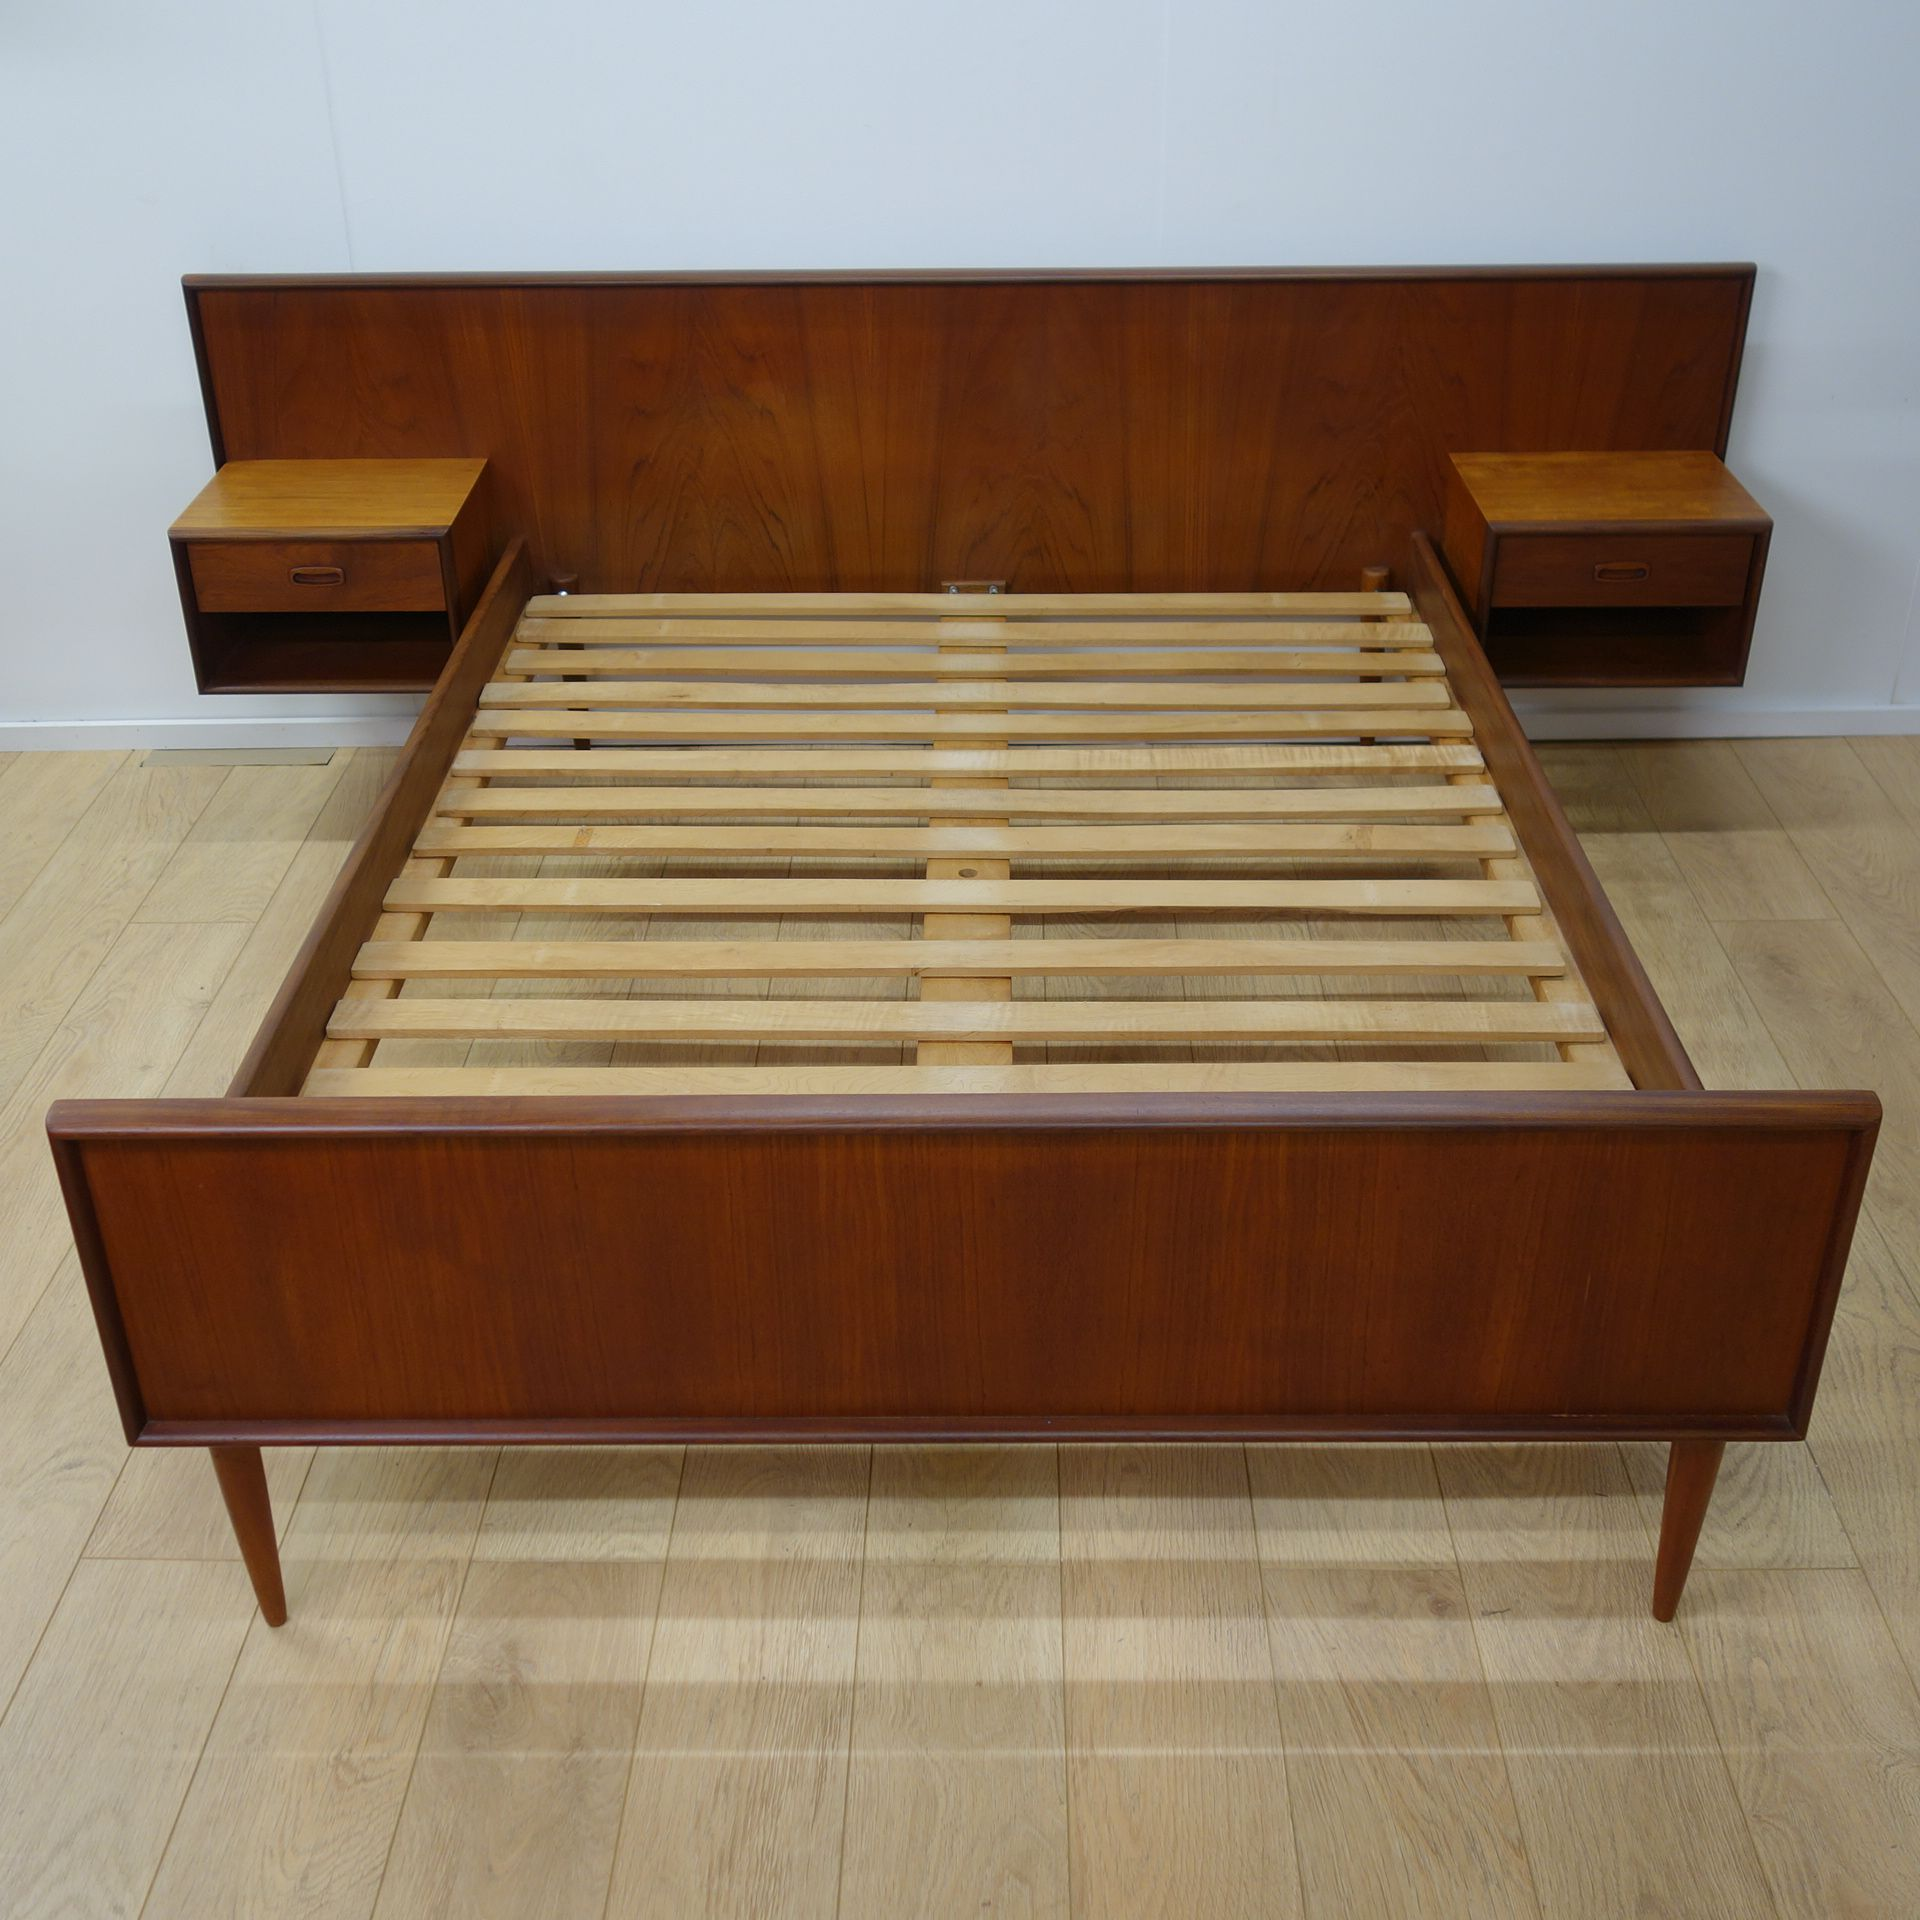 Buy Retro 1960s Danish Teak Double Bed From Mark Parrish